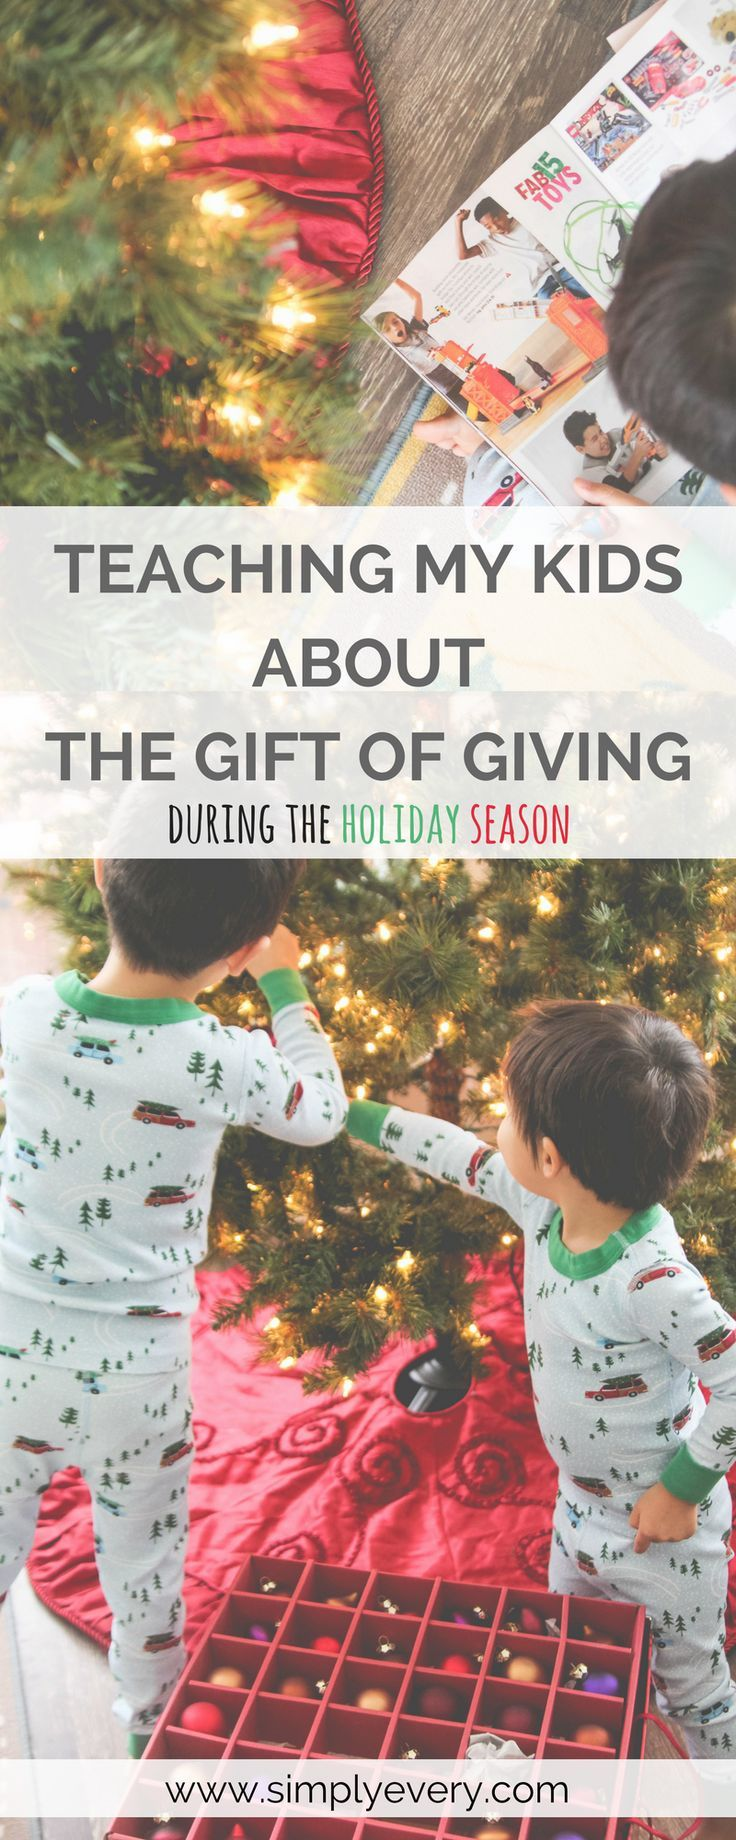 Give the gift back christmas play ideas